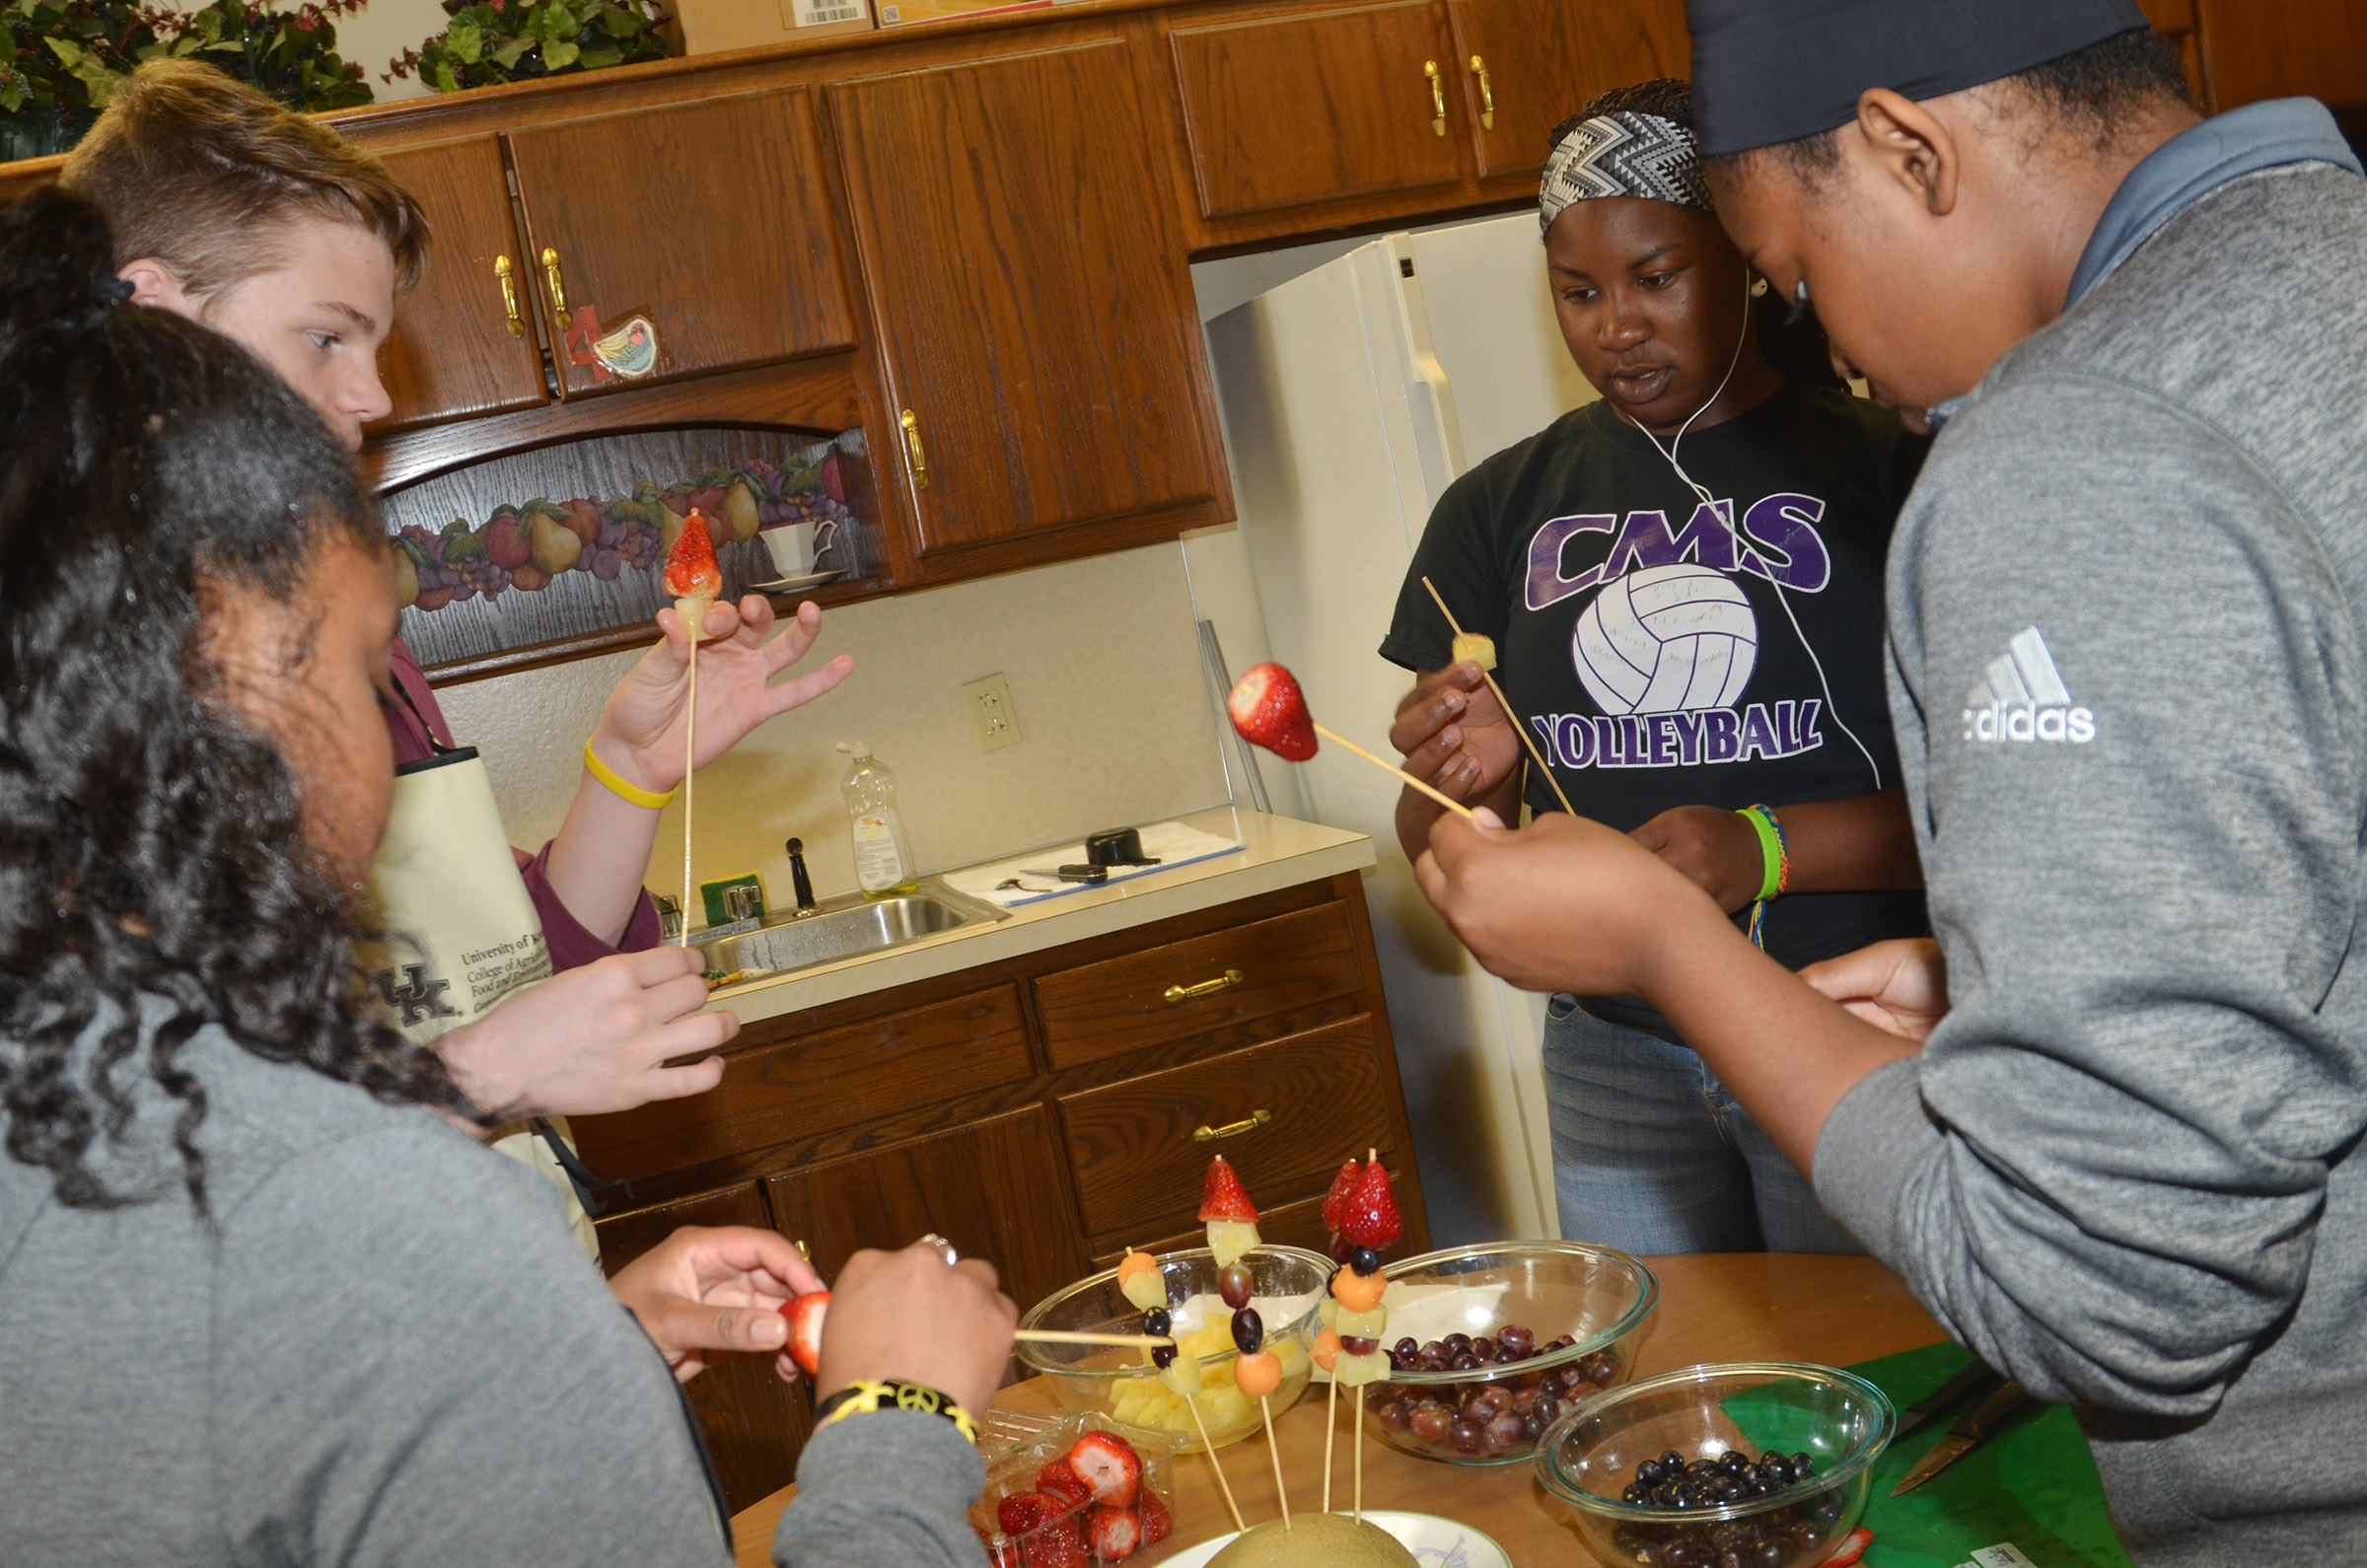 From left, CHS senior Kayla Atkinson, sophomore Joe Pipes and juniors Kiyah Barnett and Vonnea Smith make a fruit arrangement together.